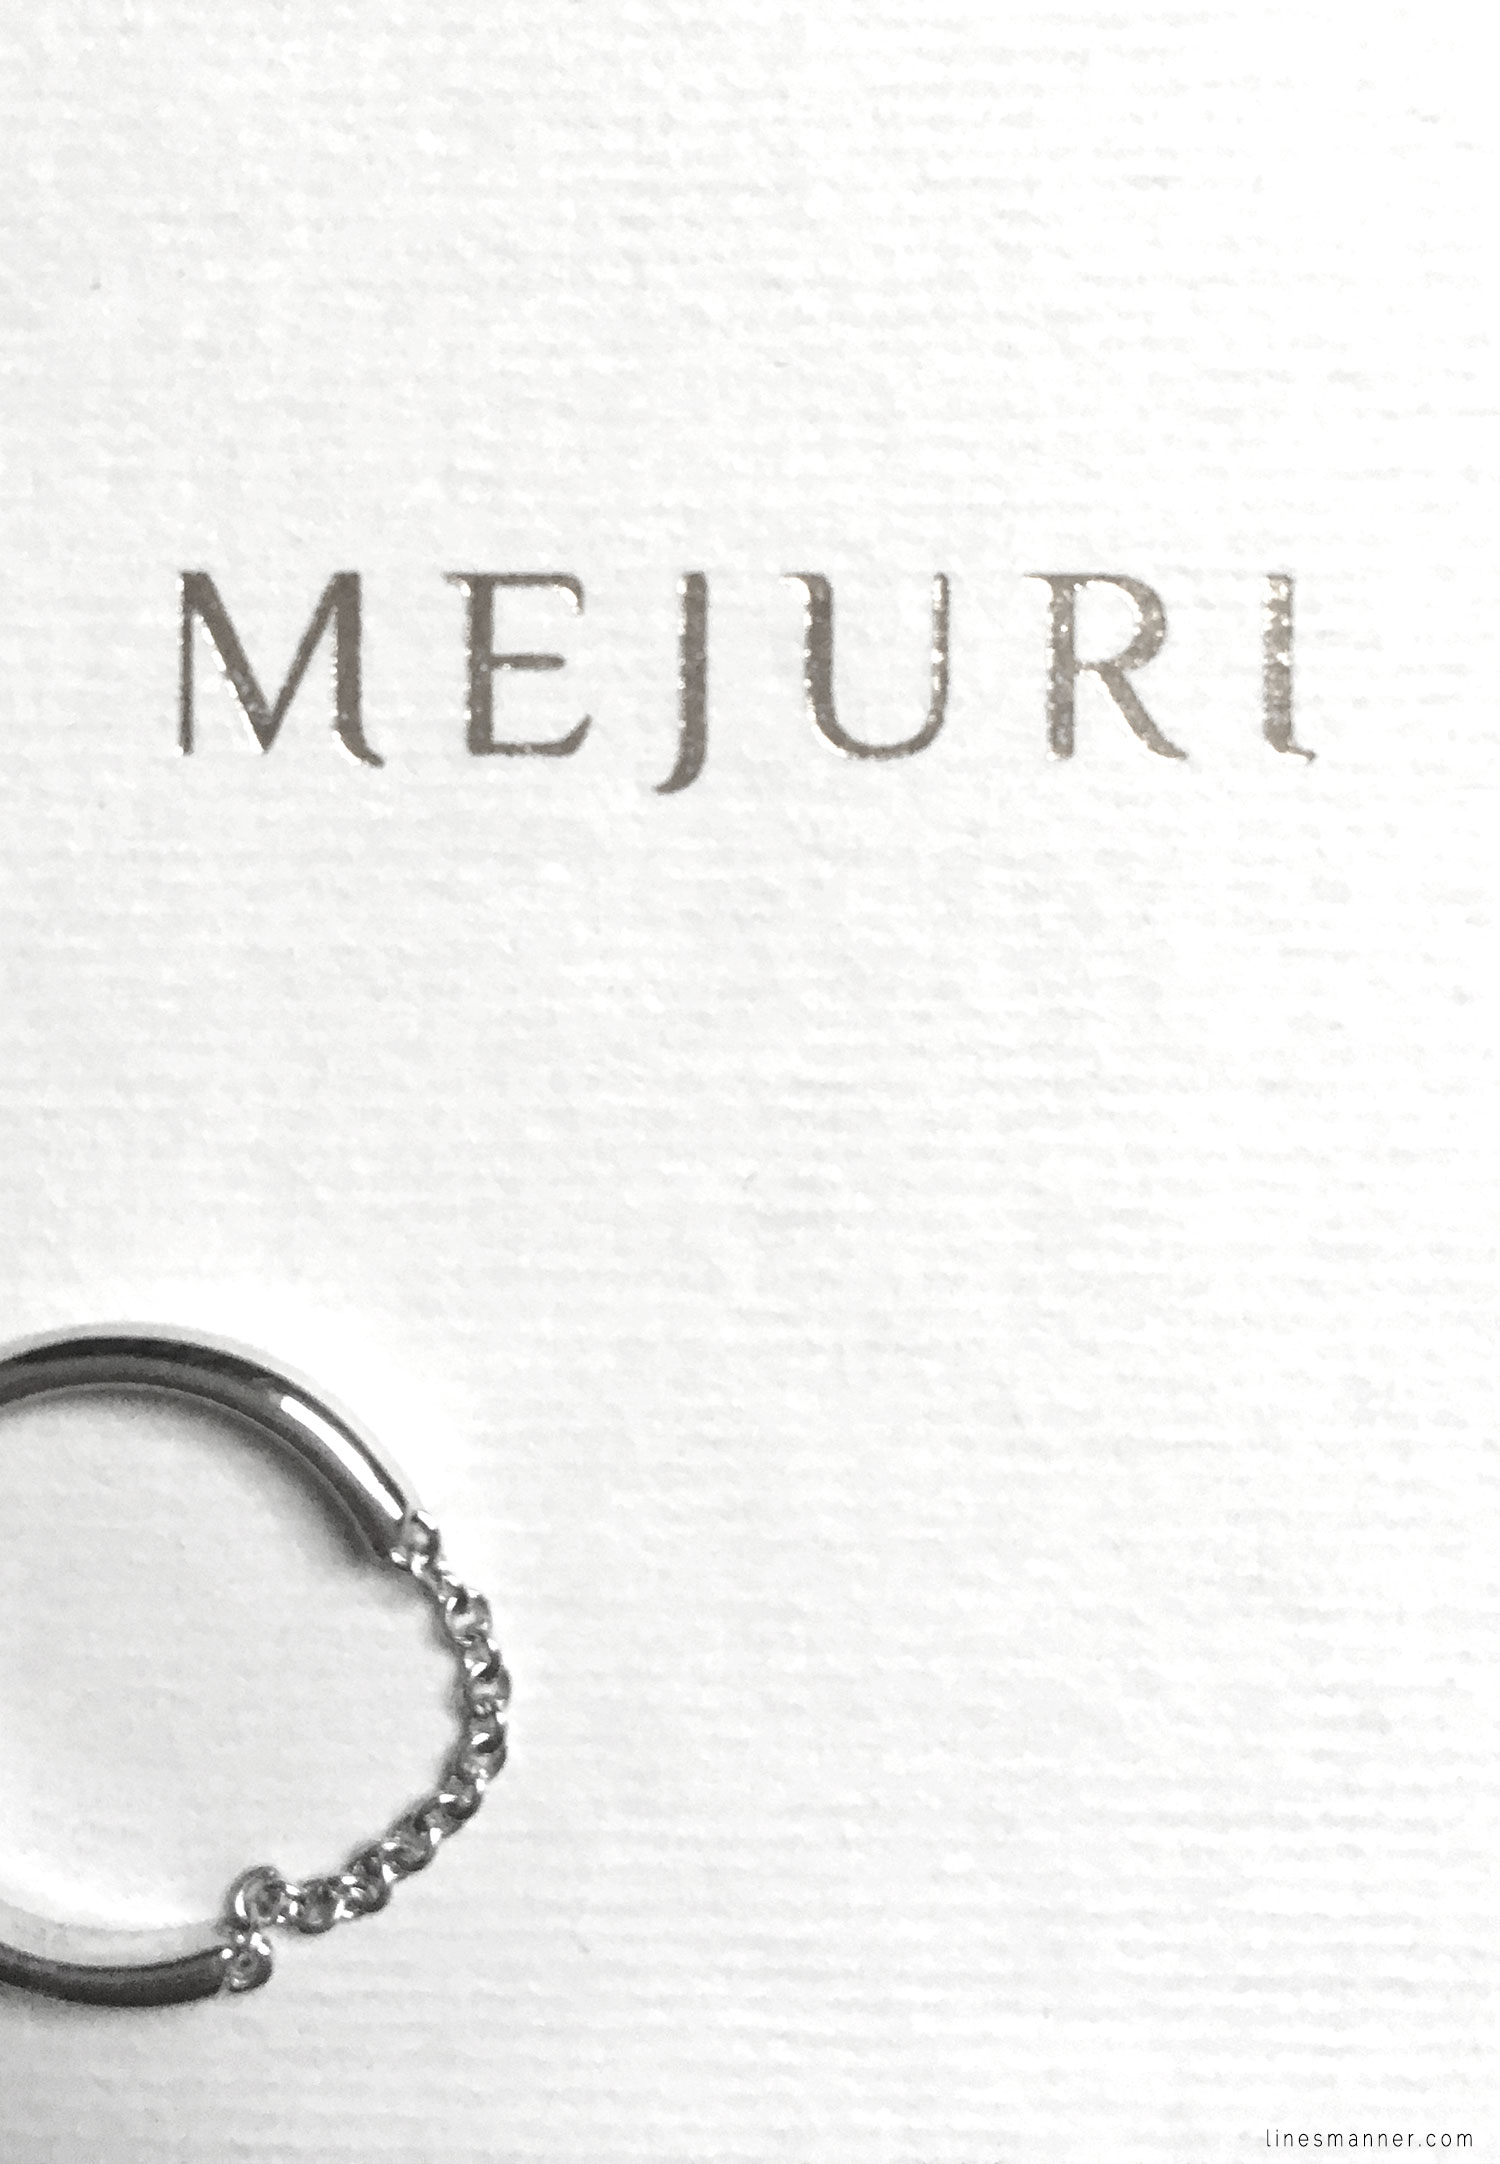 Lines-Manner-Details-Mejuri-Marble-Essentials-Minimal-Jewellery-Silver-Ring-Delicate-Monochrome-Simplicity-5